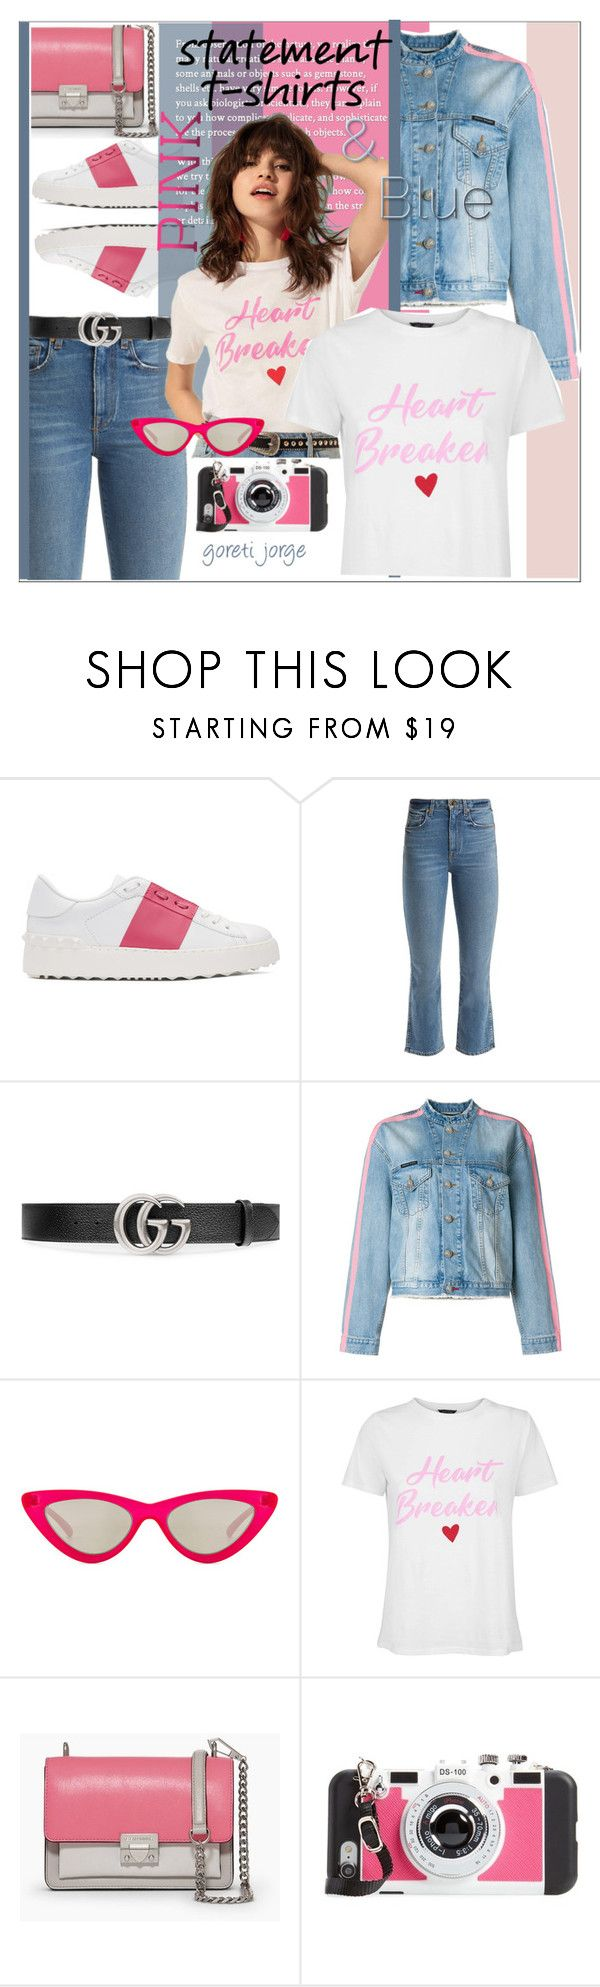 """Statement T-Shirts"" by goreti ❤ liked on Polyvore featuring Valentino, Khaite, Gucci, Philipp Plein, Le Specs, Rebecca Minkoff, BP., polyvoreeditorial, polyfriends and statementtshirt"